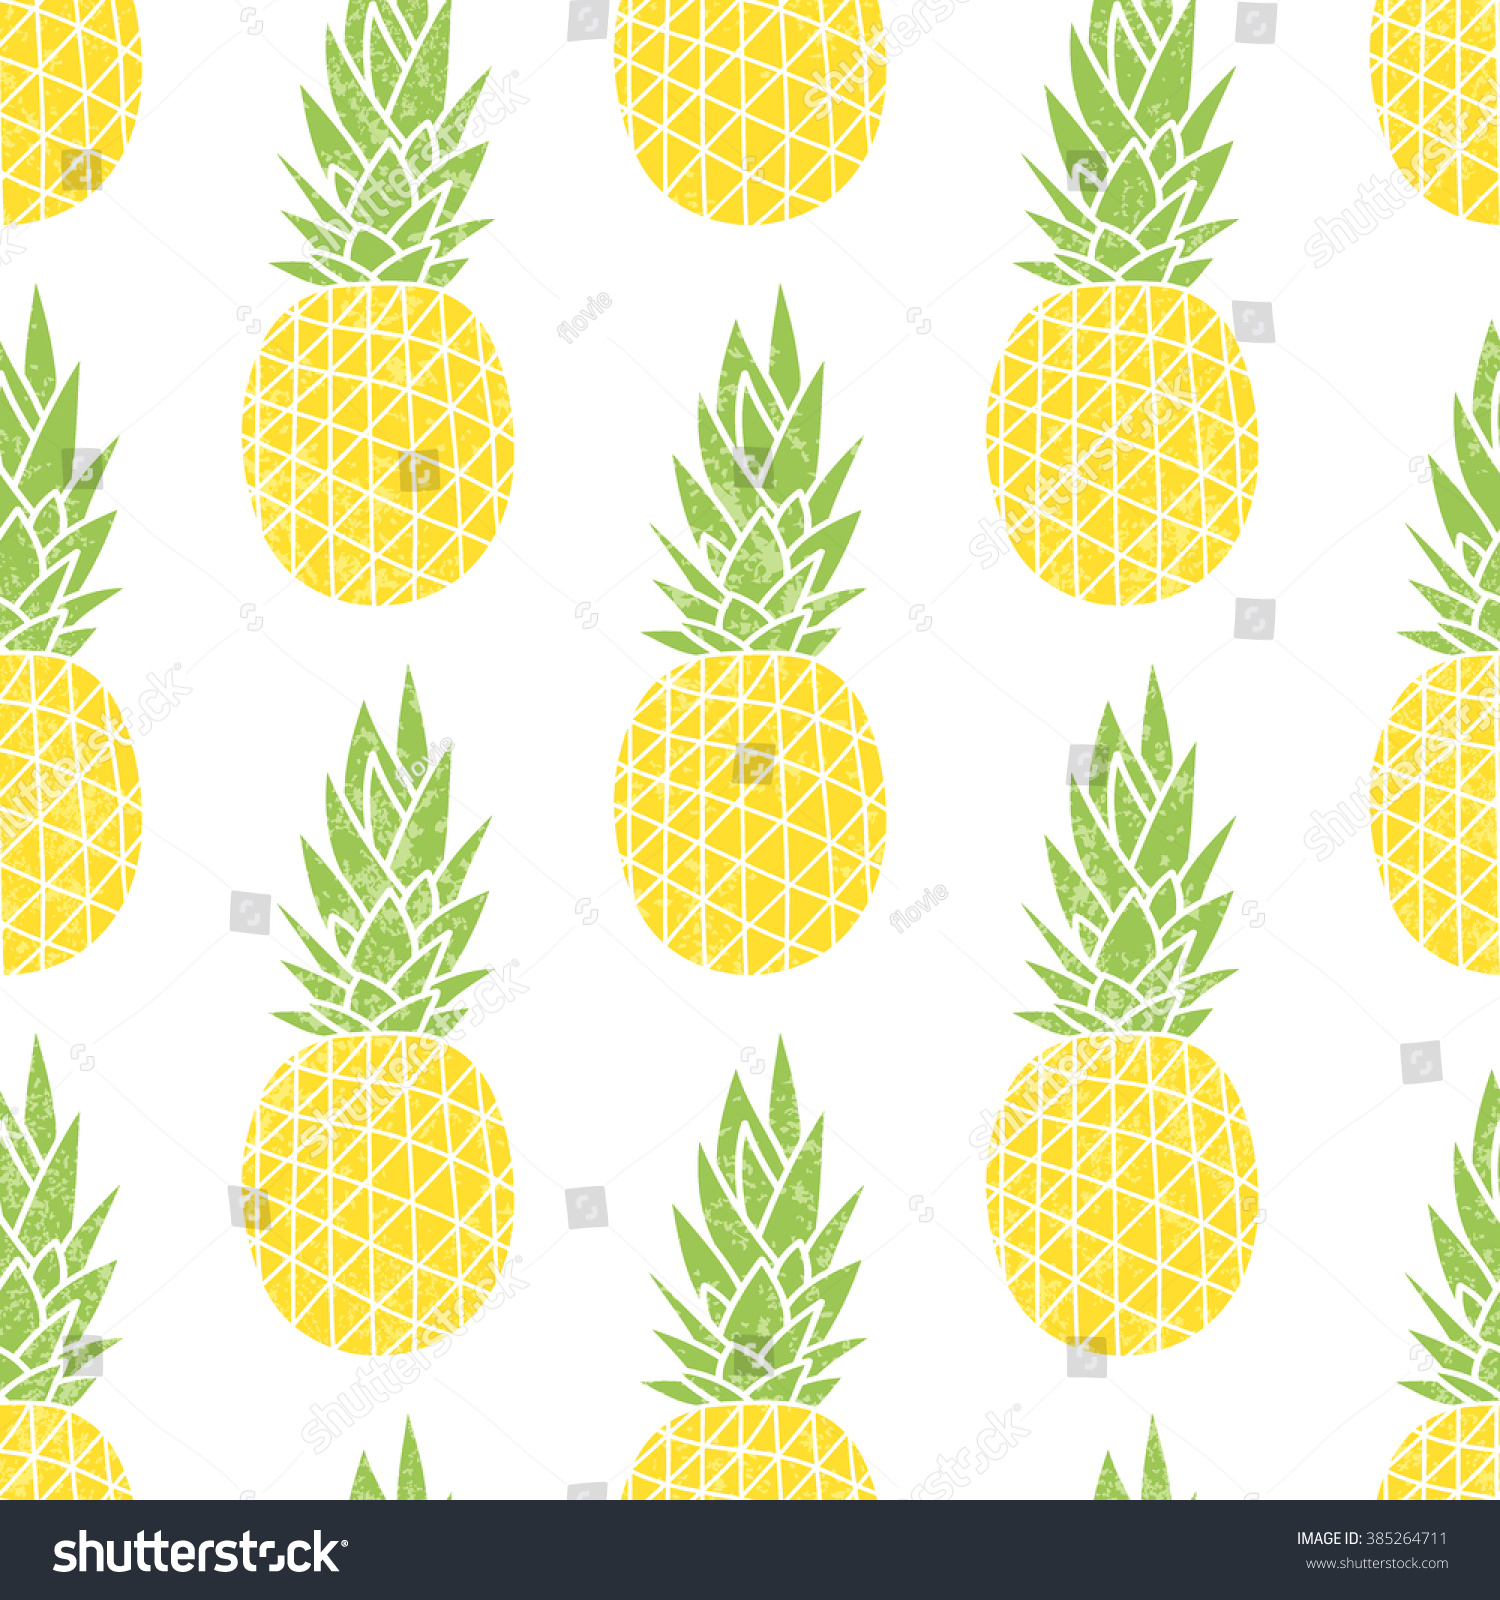 99 How To Draw A Pineapple Step By Step Very Easy And Fast